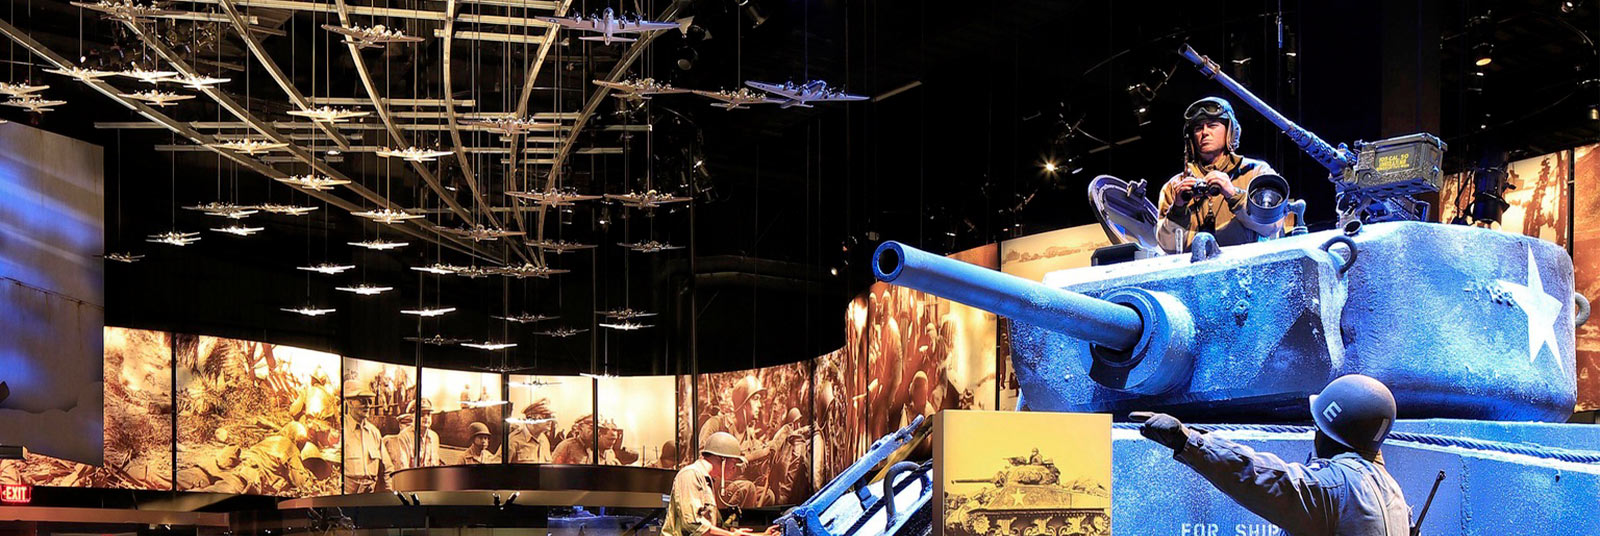 Exhibit space inside the National Museum of the United States Army featuring a tank, lit photo wall and suspended planes on the ceiling.